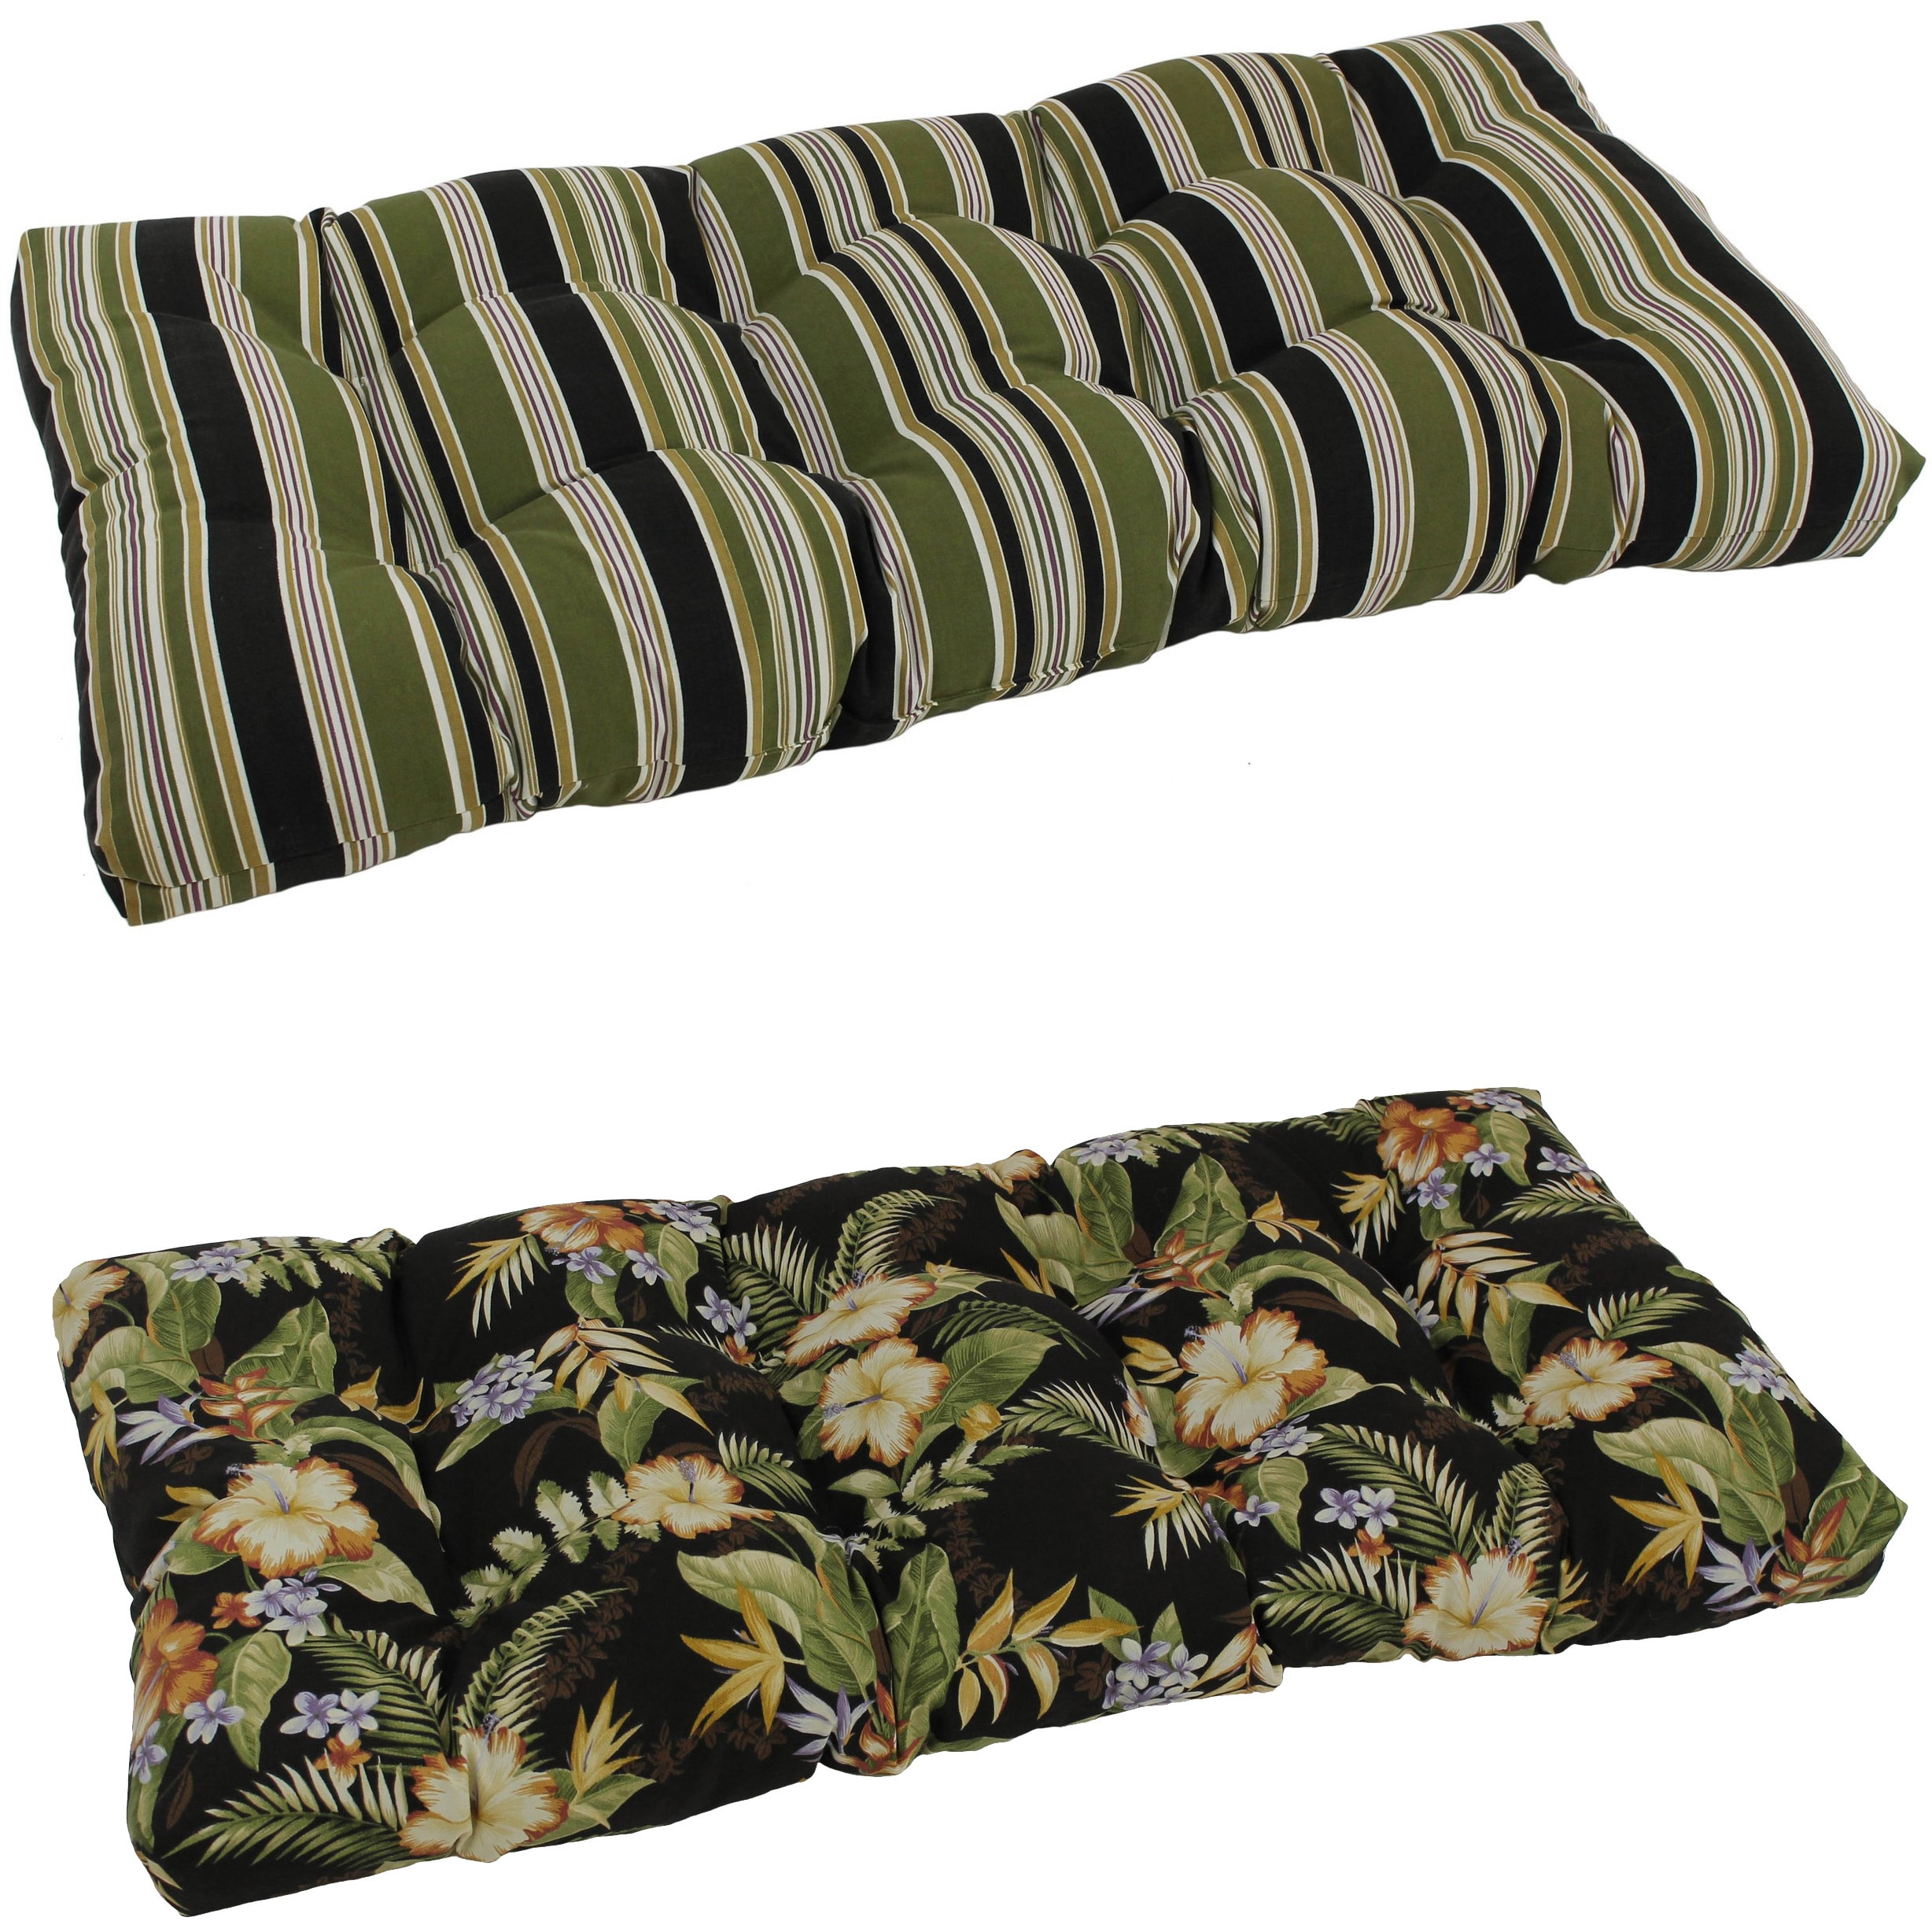 humble sunbrella haute overstock bench shipping garden today colorful product free by outdoor indoor to stripe inch home cushion